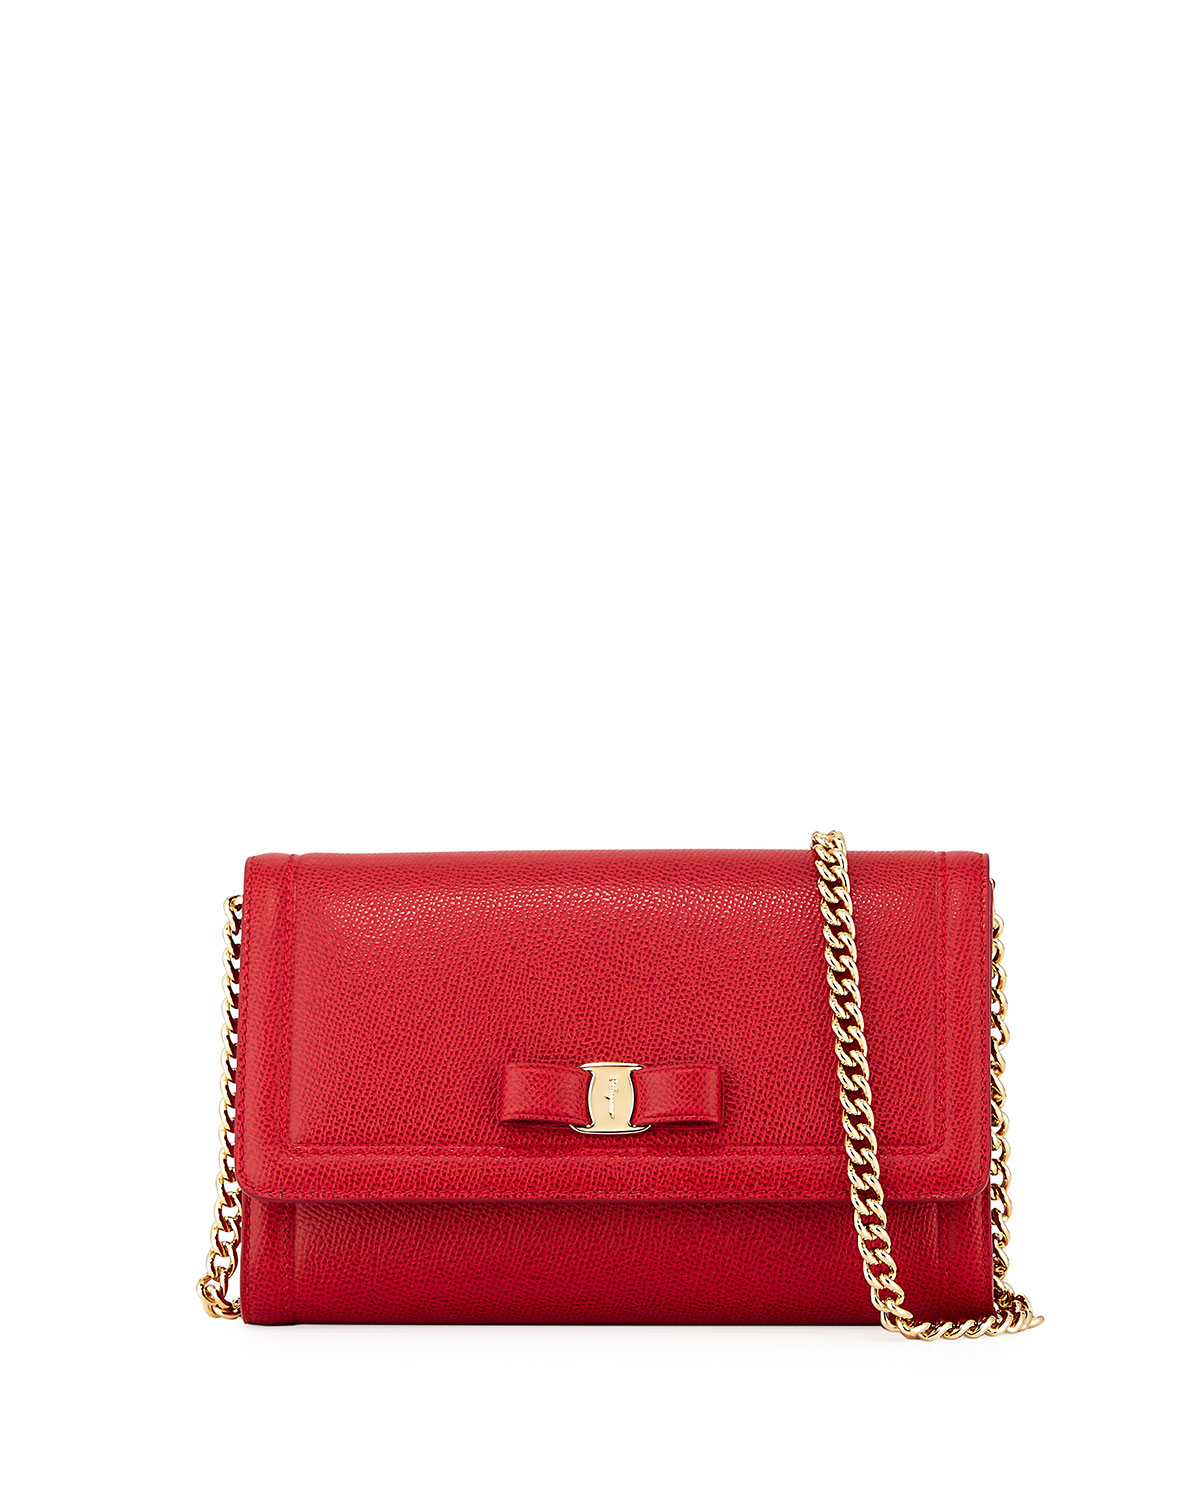 Salvatore Ferragamo Miss Vara Mini Crossbody Clutch Bag 0fc68baaaa023